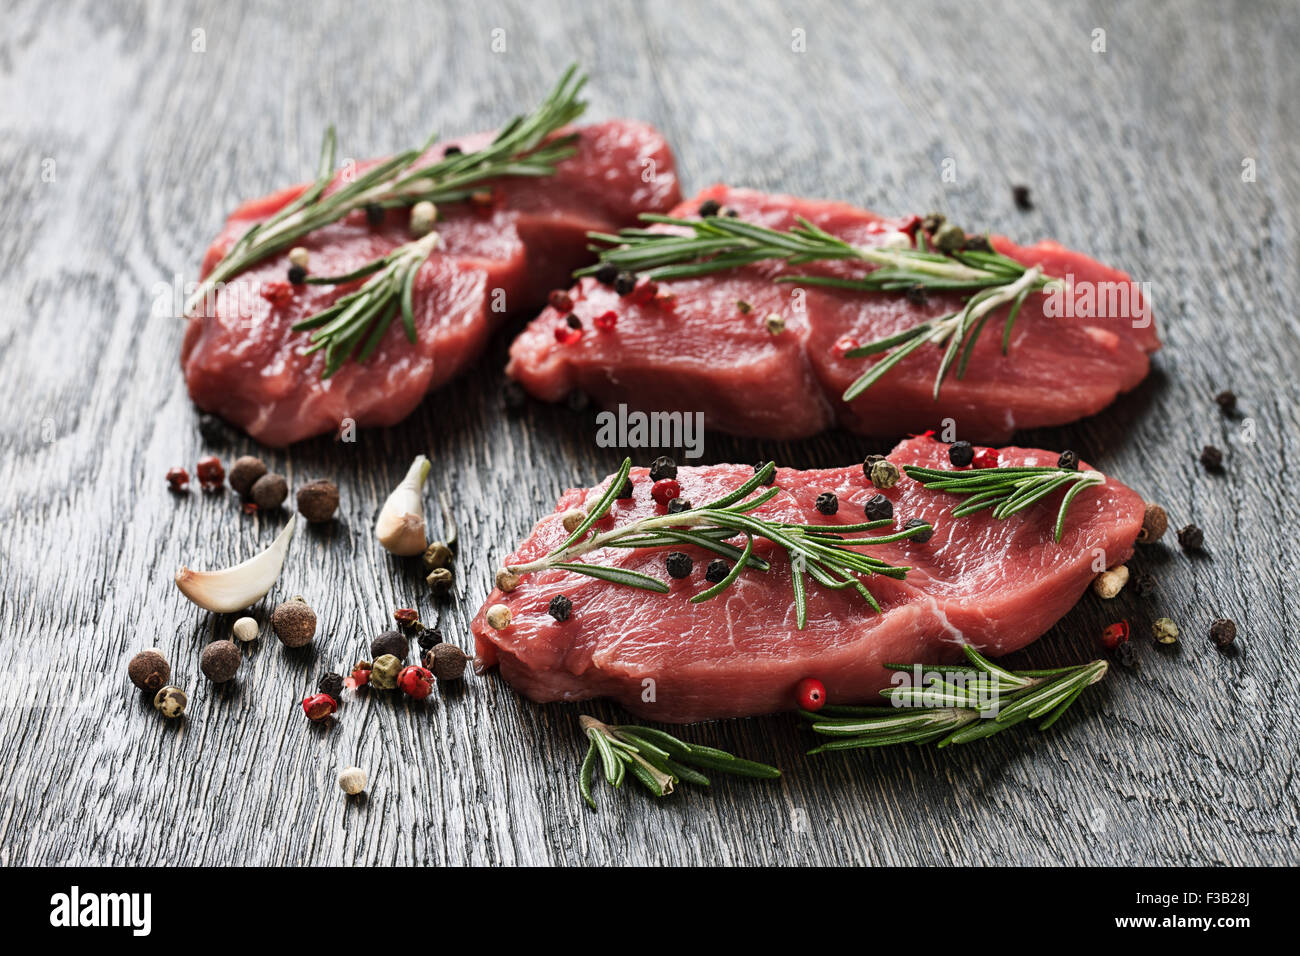 Three juicy raw beef steaks garnished with rosemary twigs, garlic and peppercorns - Stock Image